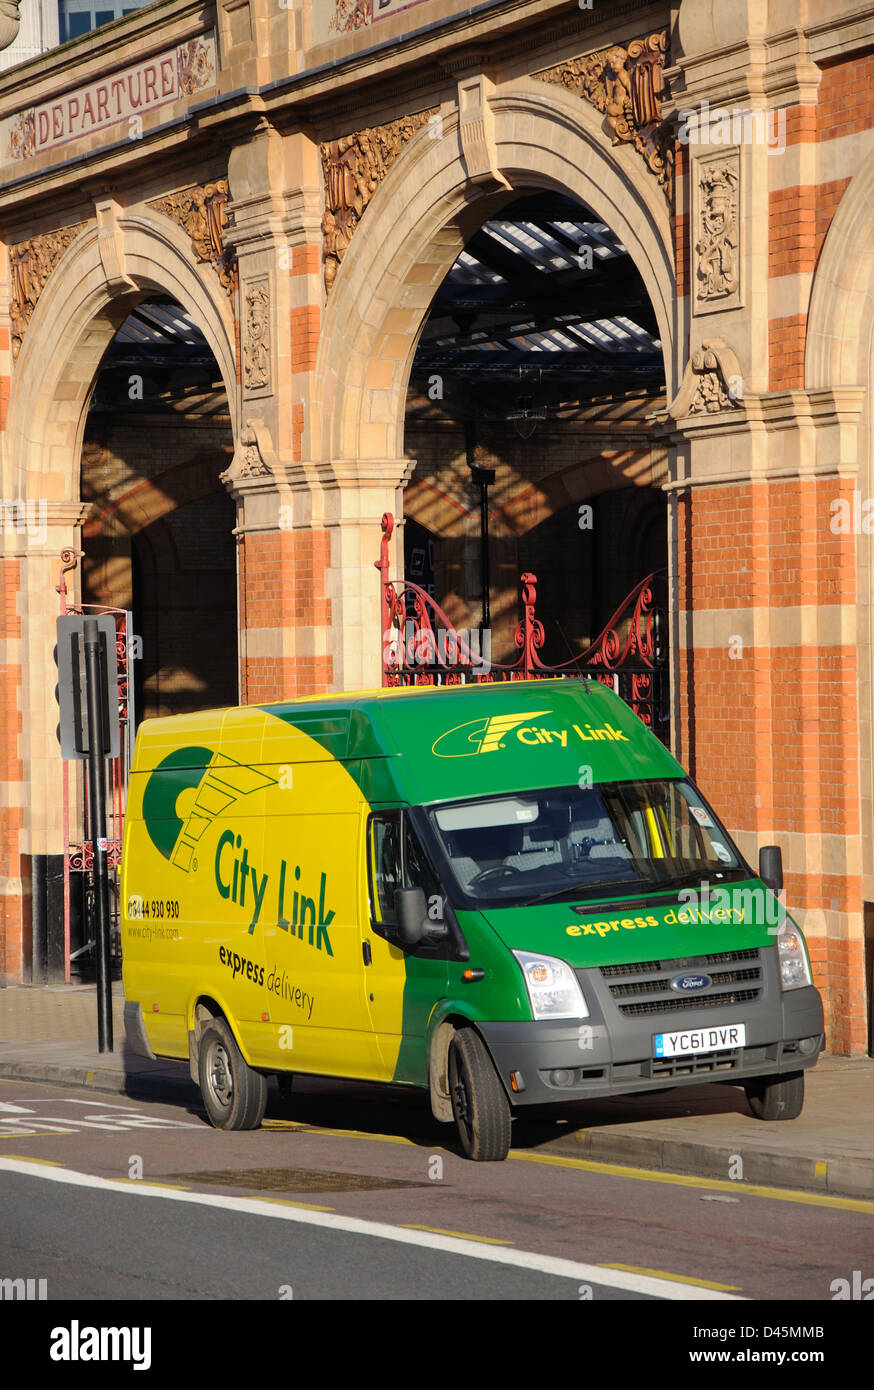 City Link van parked outside Leicester station, Leicester, England, UK - Stock Image